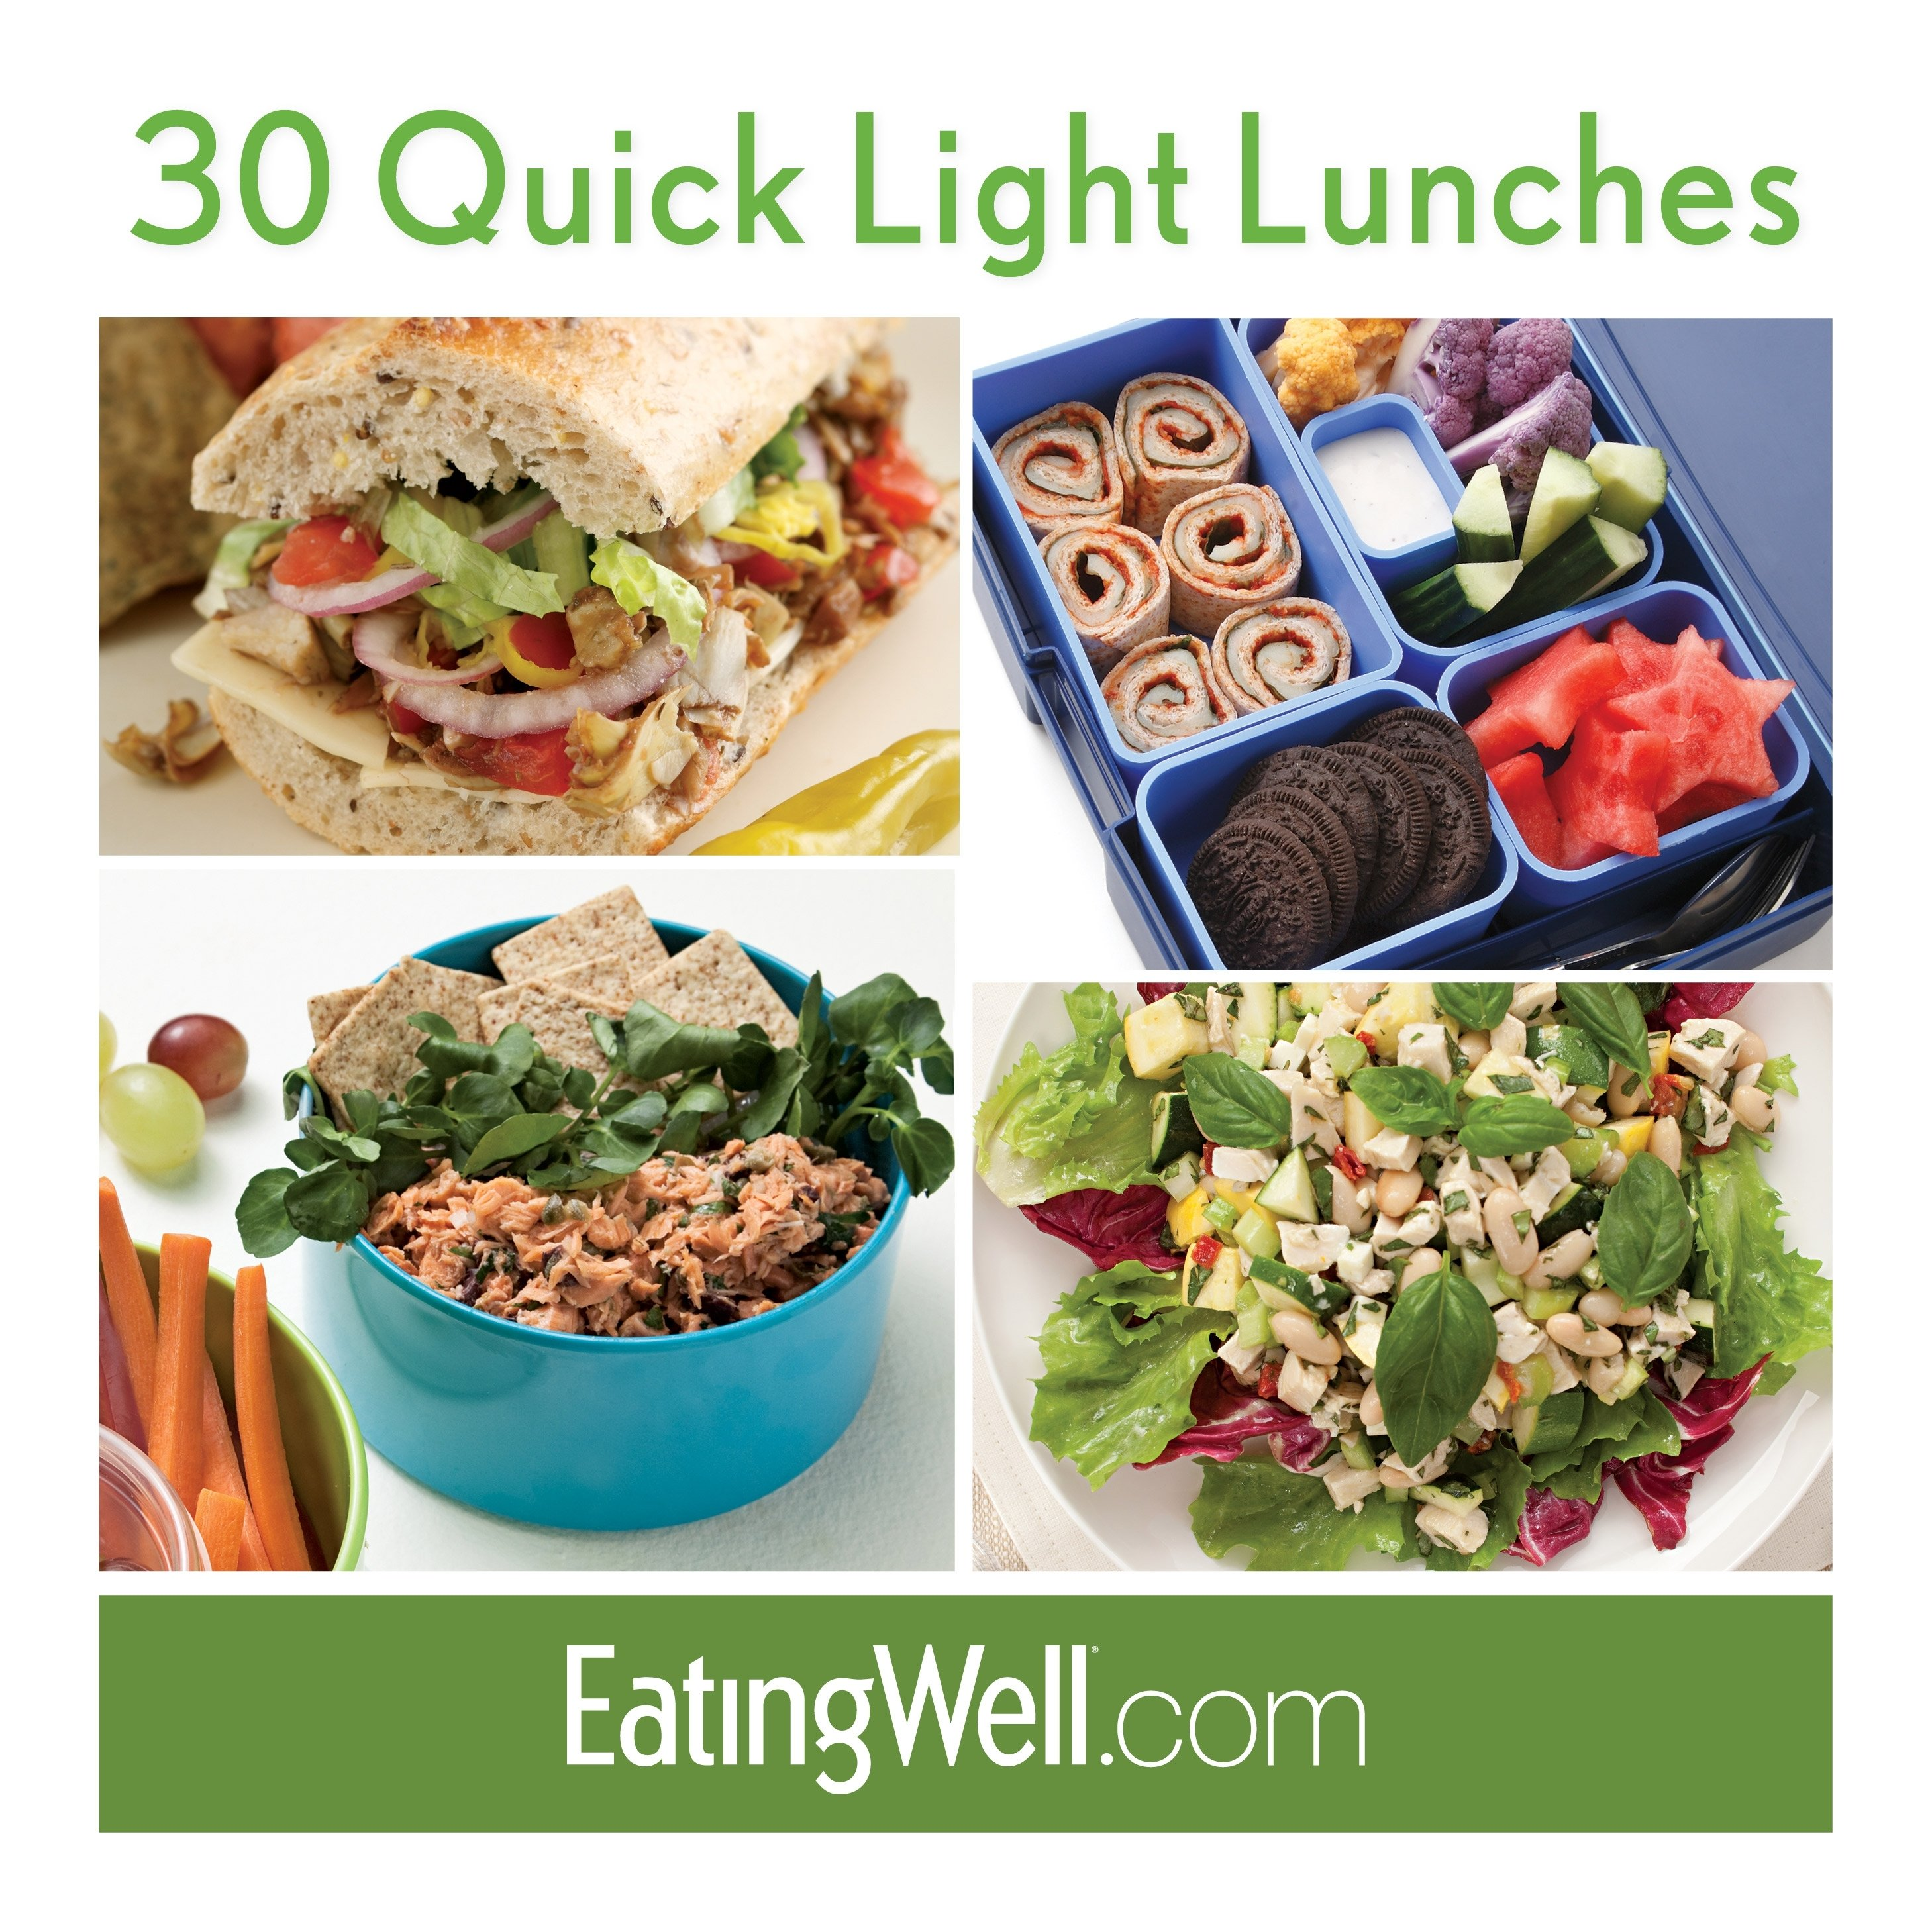 10 Attractive Cheap Lunch Ideas For Work sandwiches salads bento boxes and more healthy low calorie lunch 2 2020